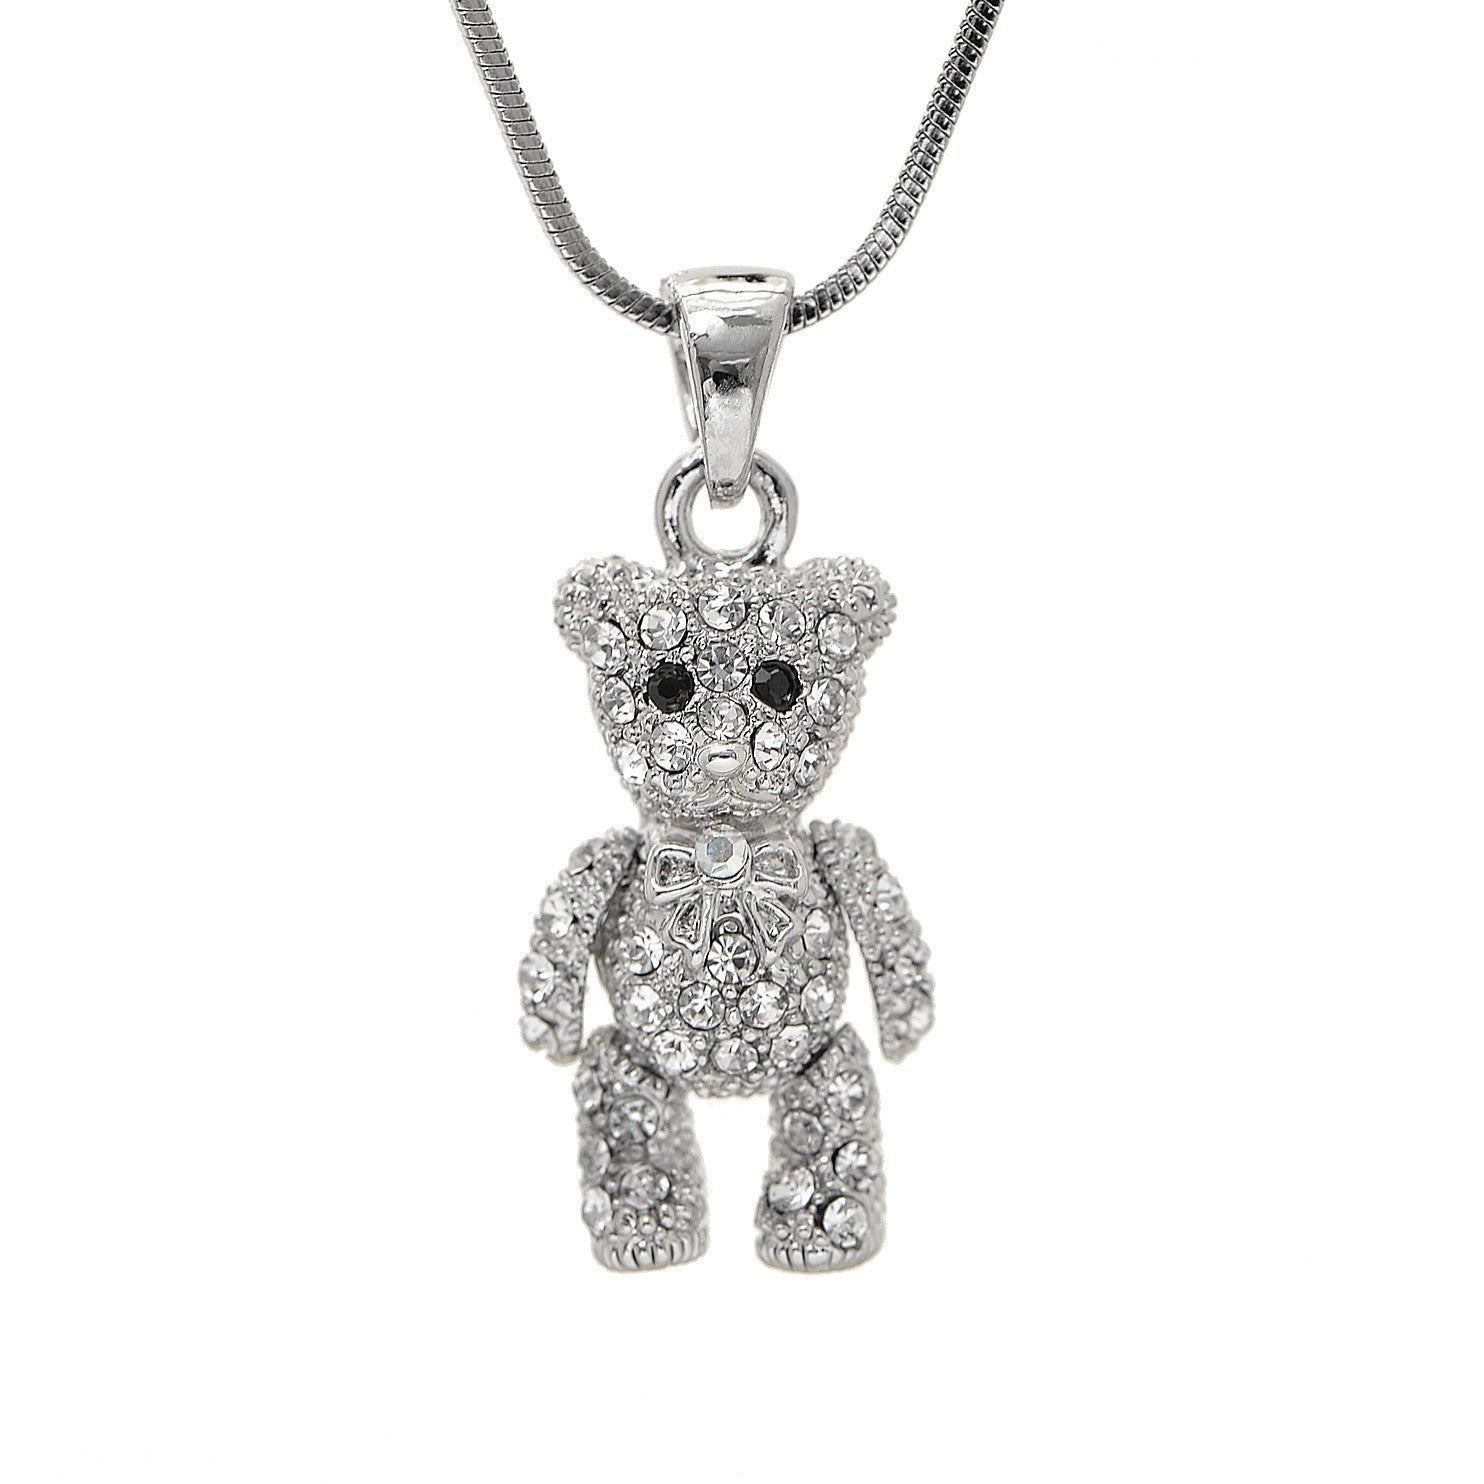 pendant necklace bear silver crystal s claire cute teddy